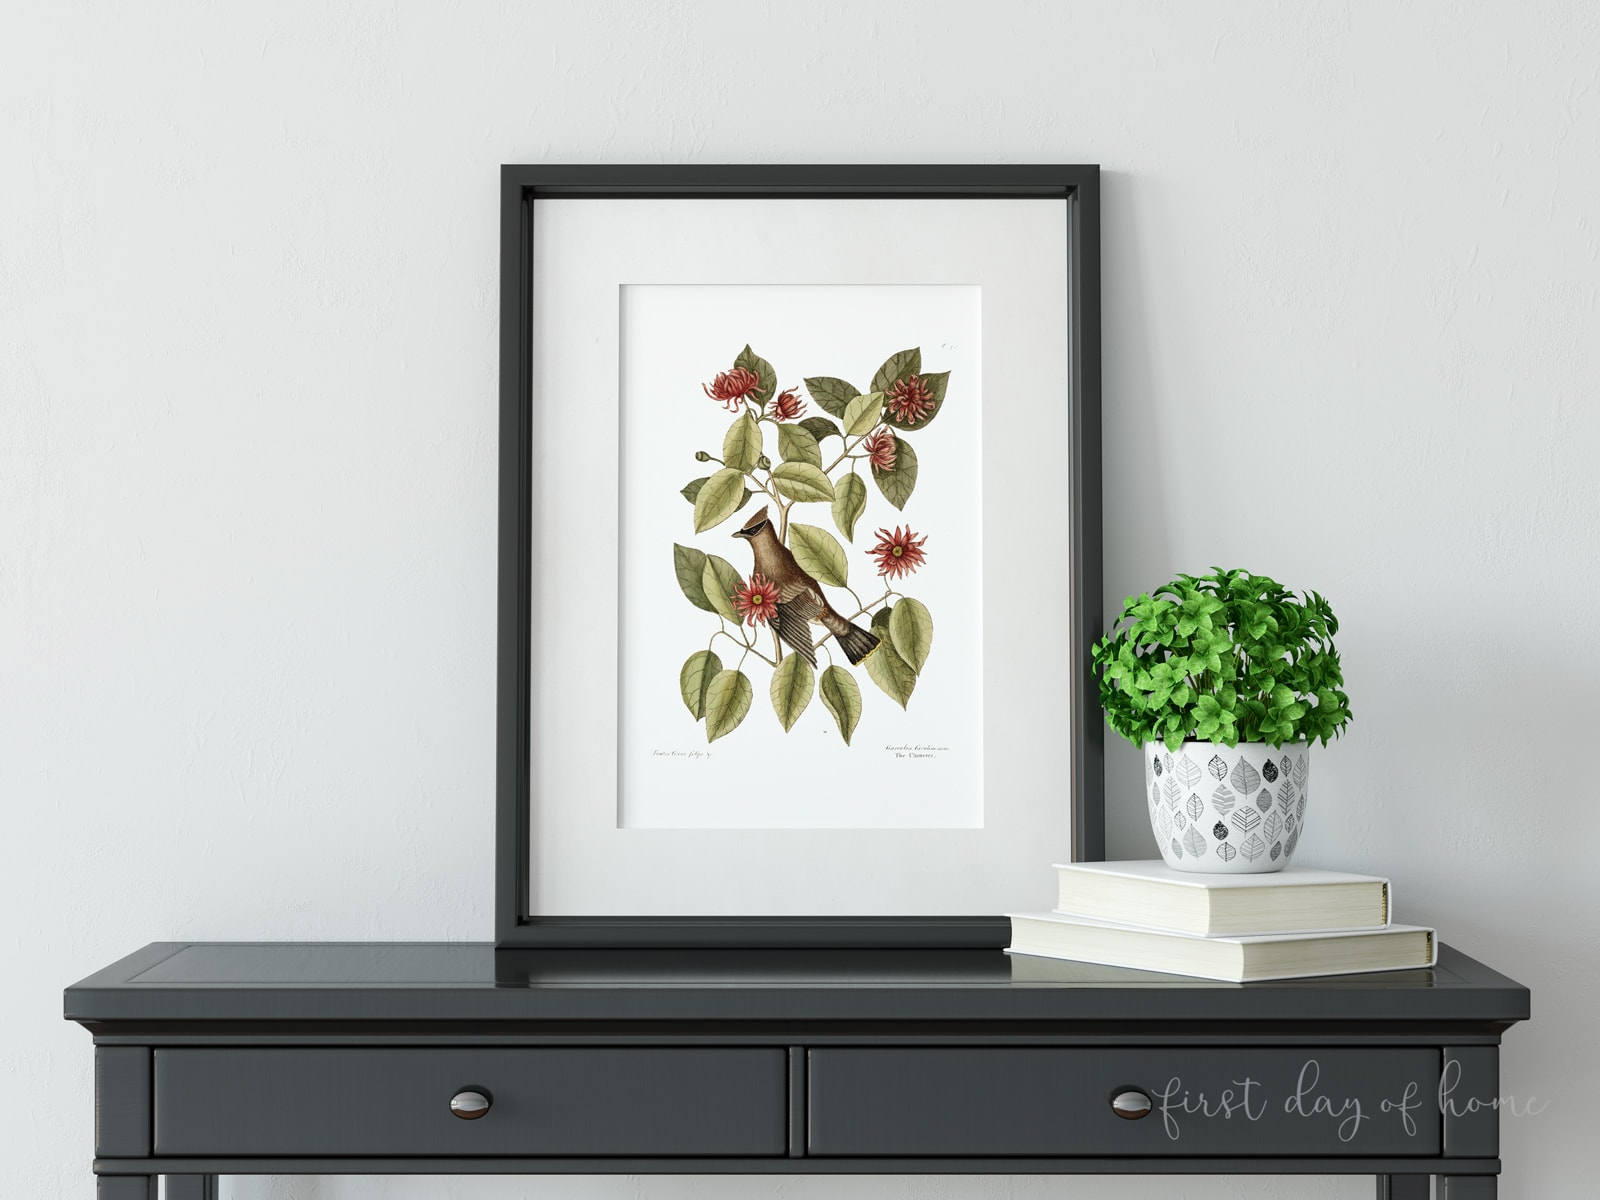 Vintage DIY wall art fall botanical print sitting on secretary desk with plant and books